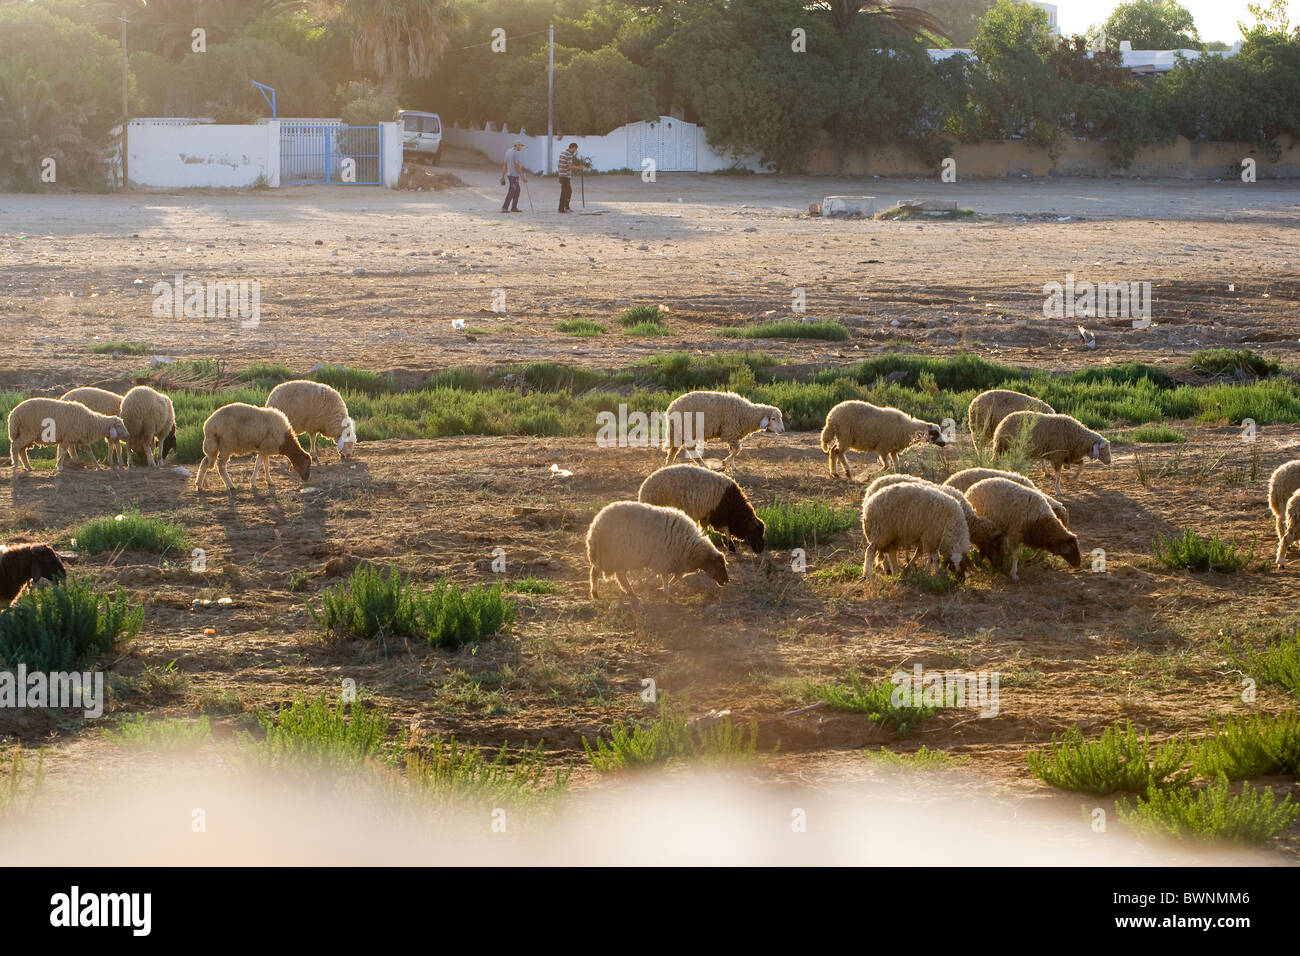 Tunisian shepherds and their flock of sheep - Stock Image